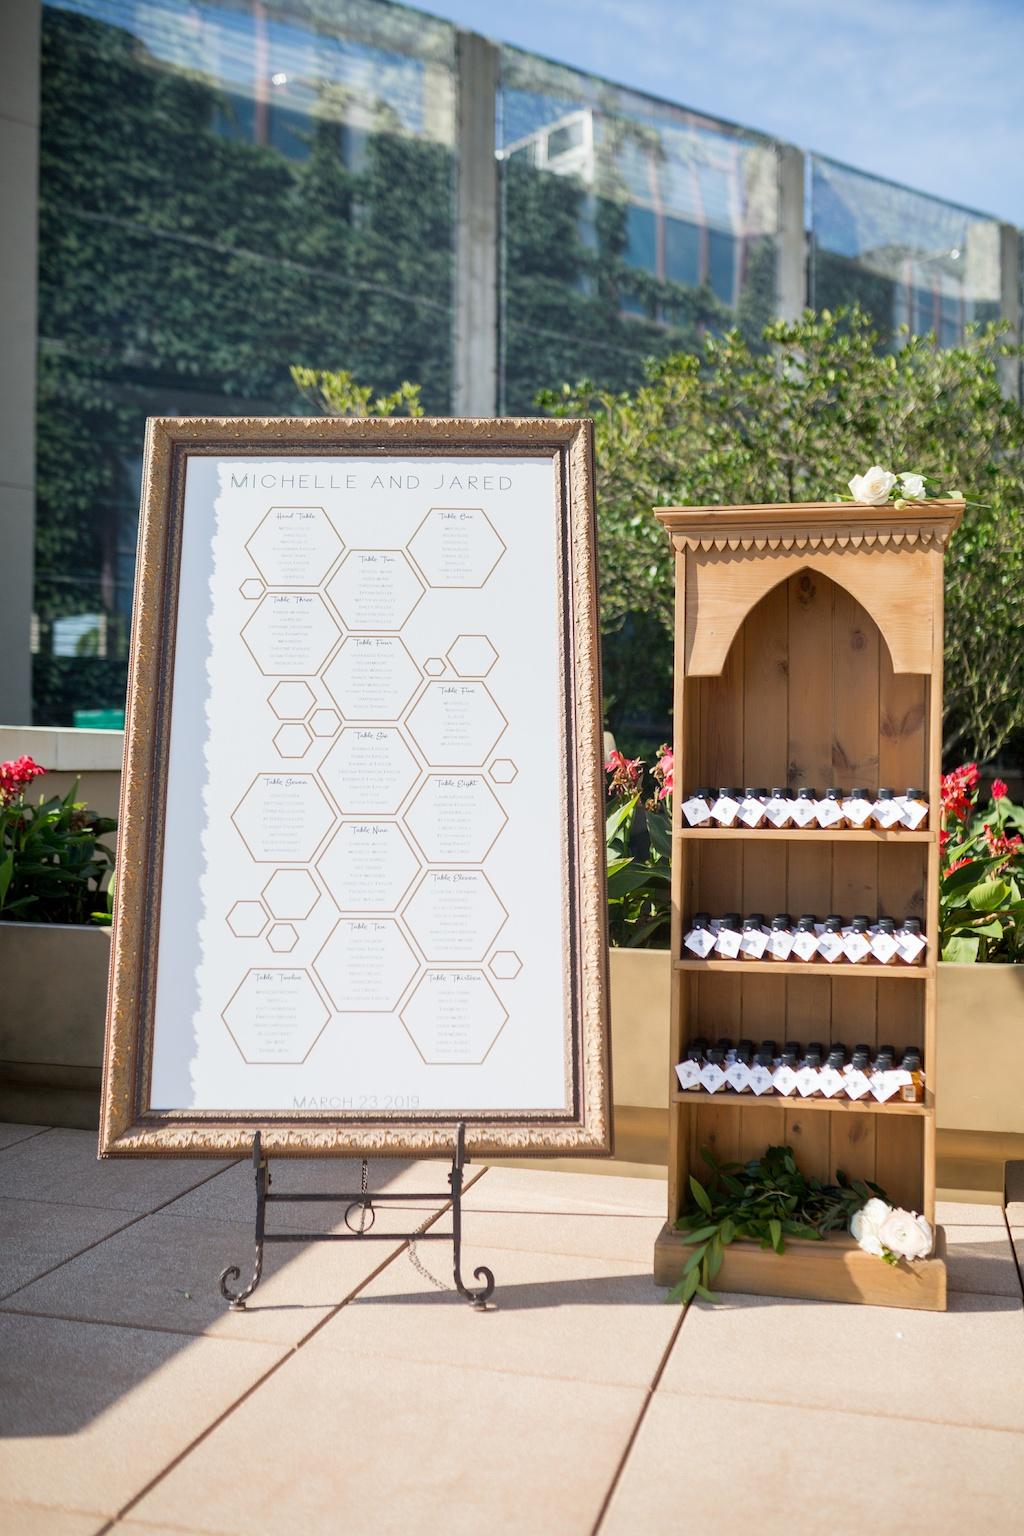 Modern, Geometric Black, White, and Gold, Bumble Bee Honey Inspired, Wedding Decor and Seating Chart, Honey Jar Guest Favor, Historic Hyde Park Wedding Venue Epicurean Hotel in South Tampa   Tampa Bay Wedding Photographer Andi Diamond Photography